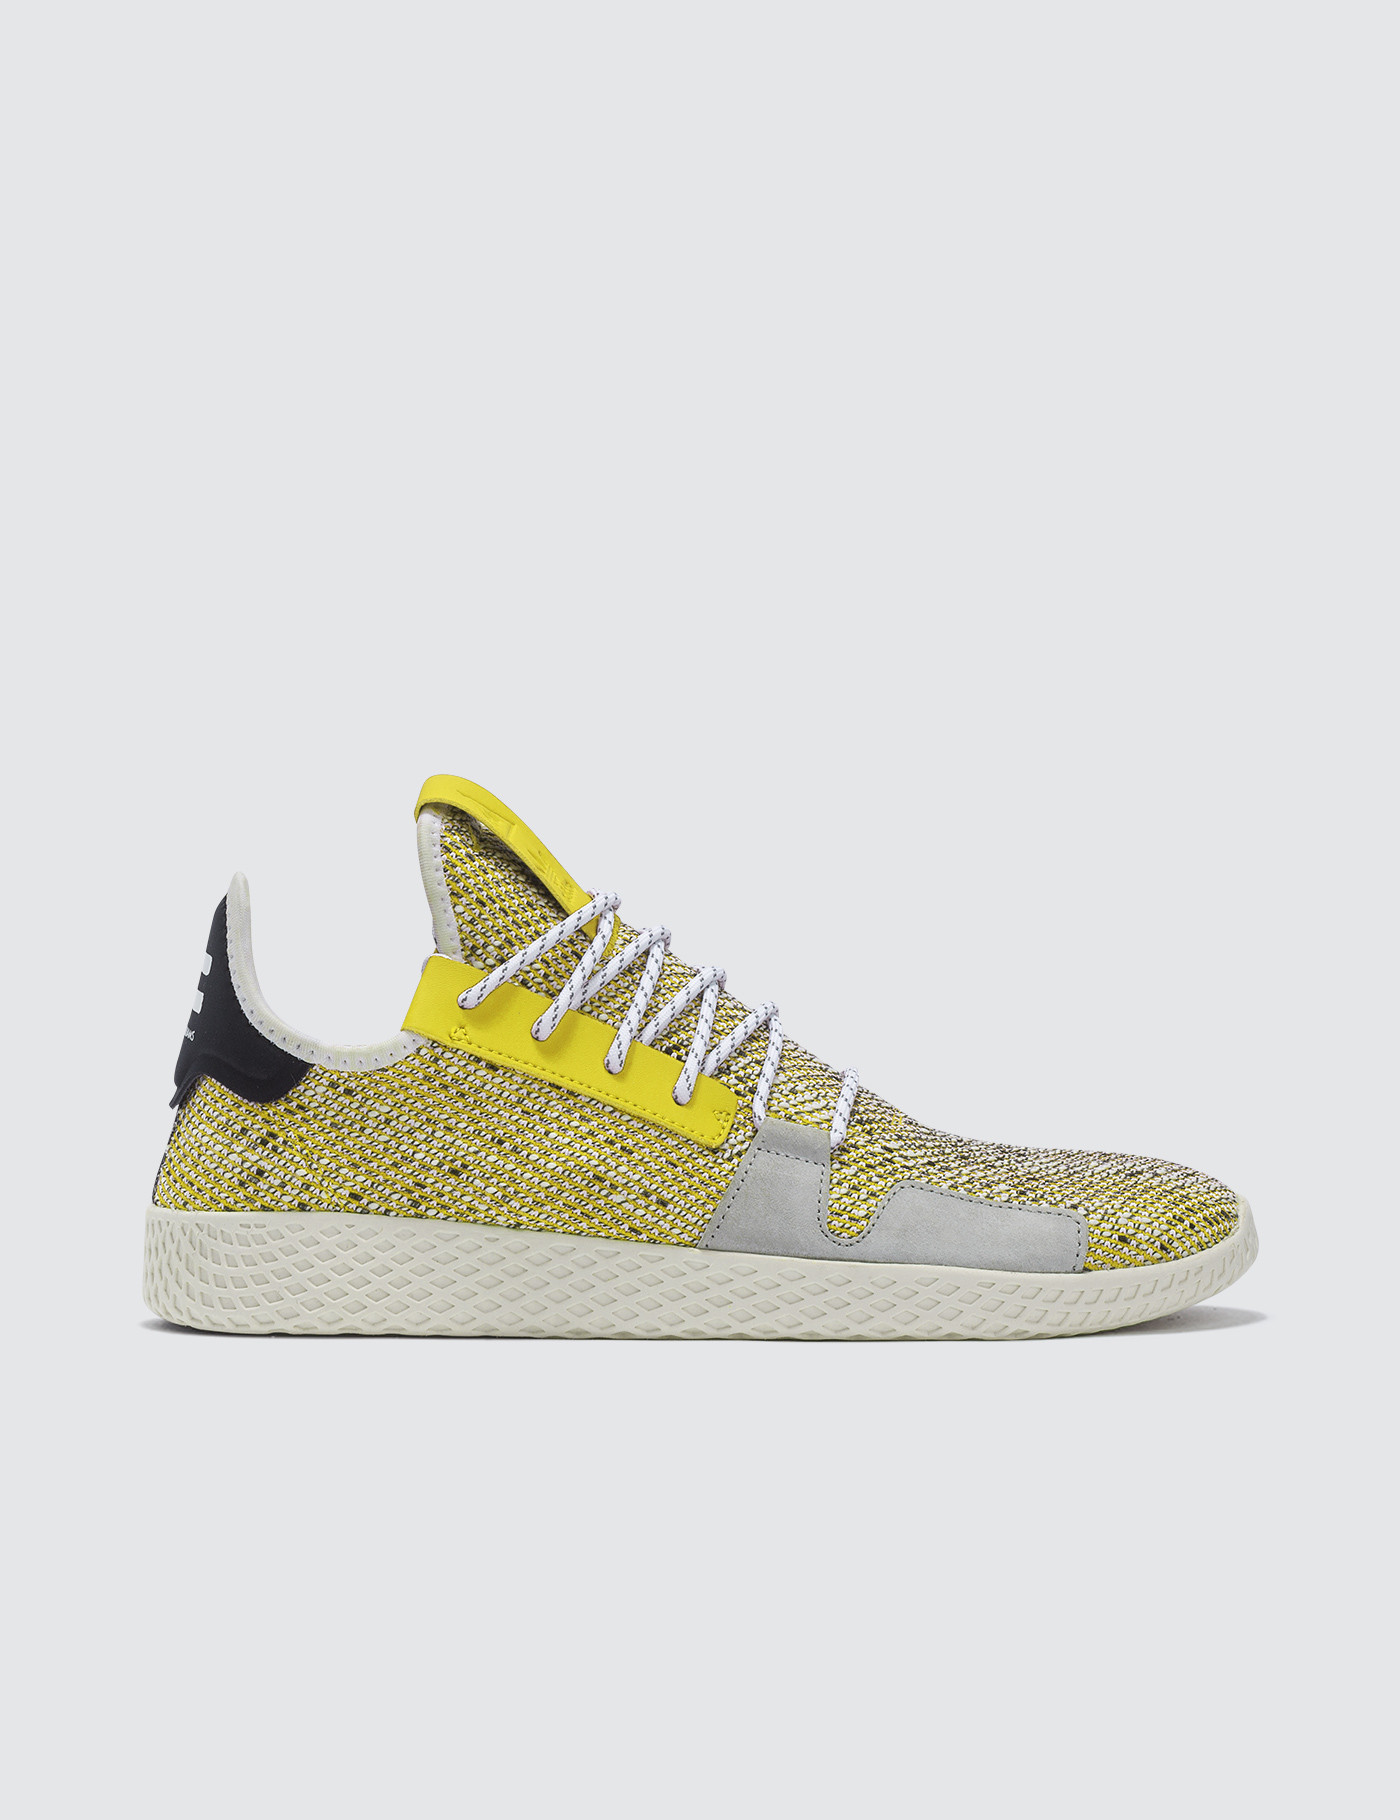 50f8172f5 ... Adidas Originals Pharrell Williams X Adidas Solar HU Tennis V2 ...